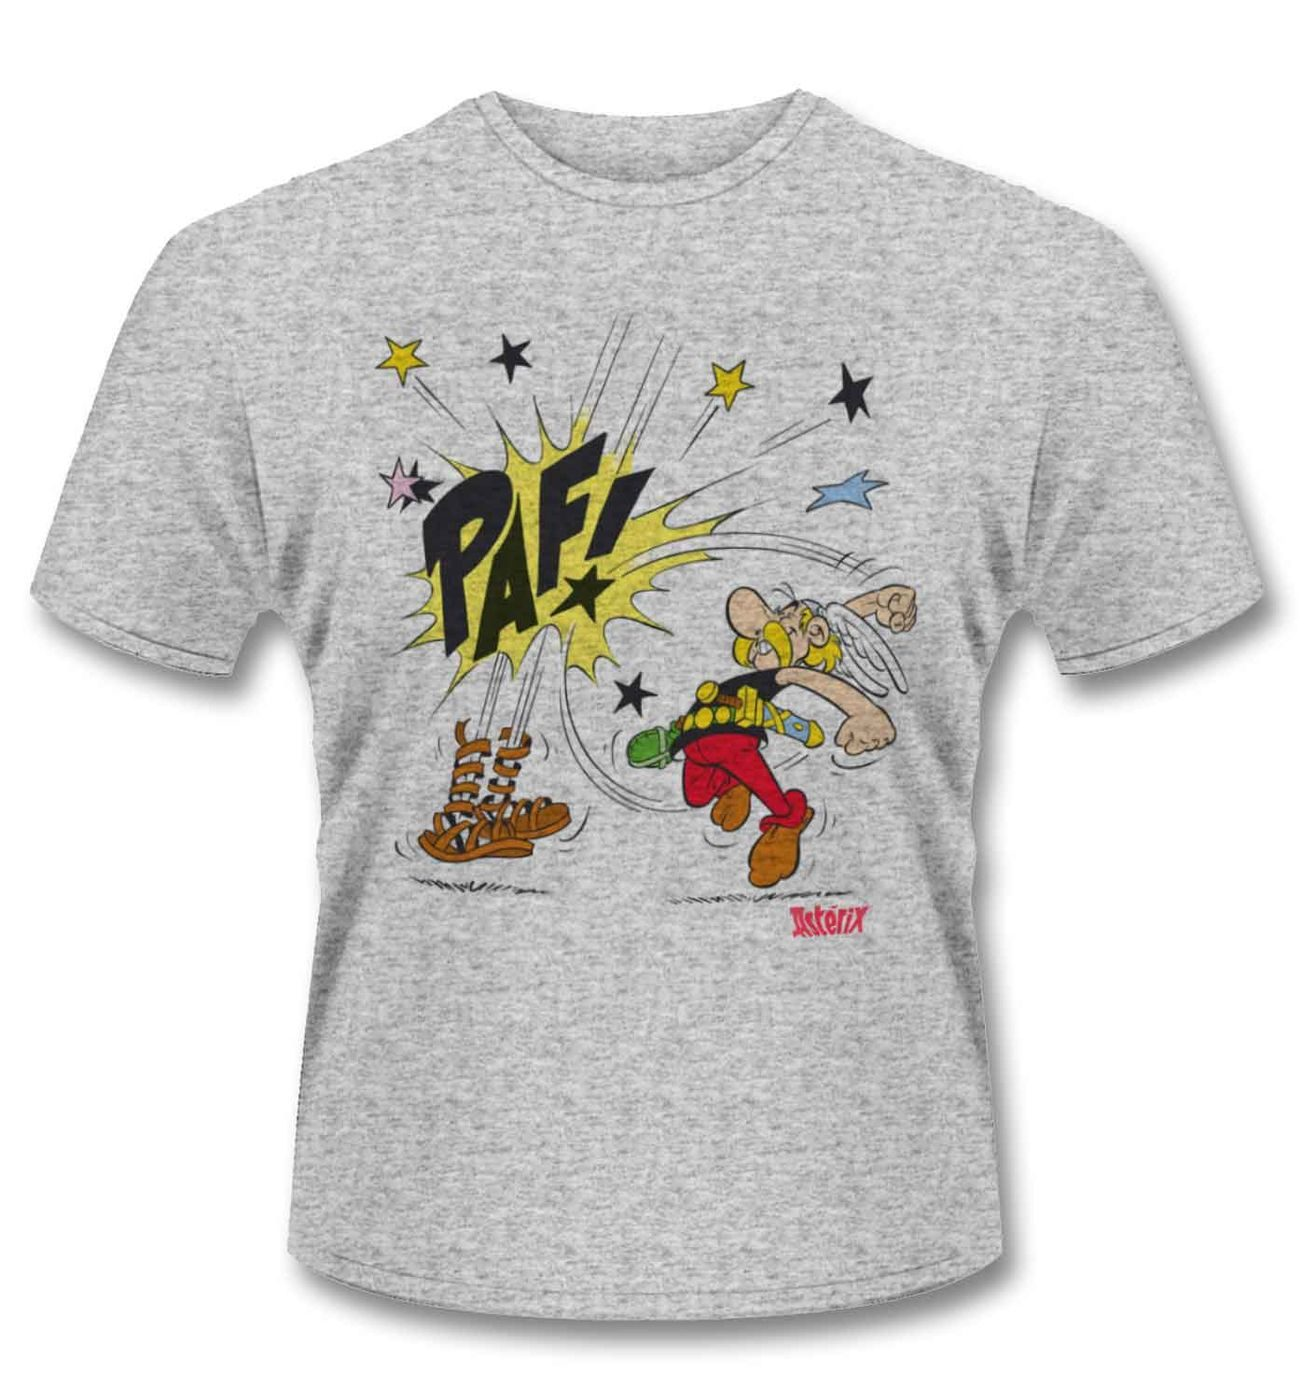 Official Asterix Punch t-shirt